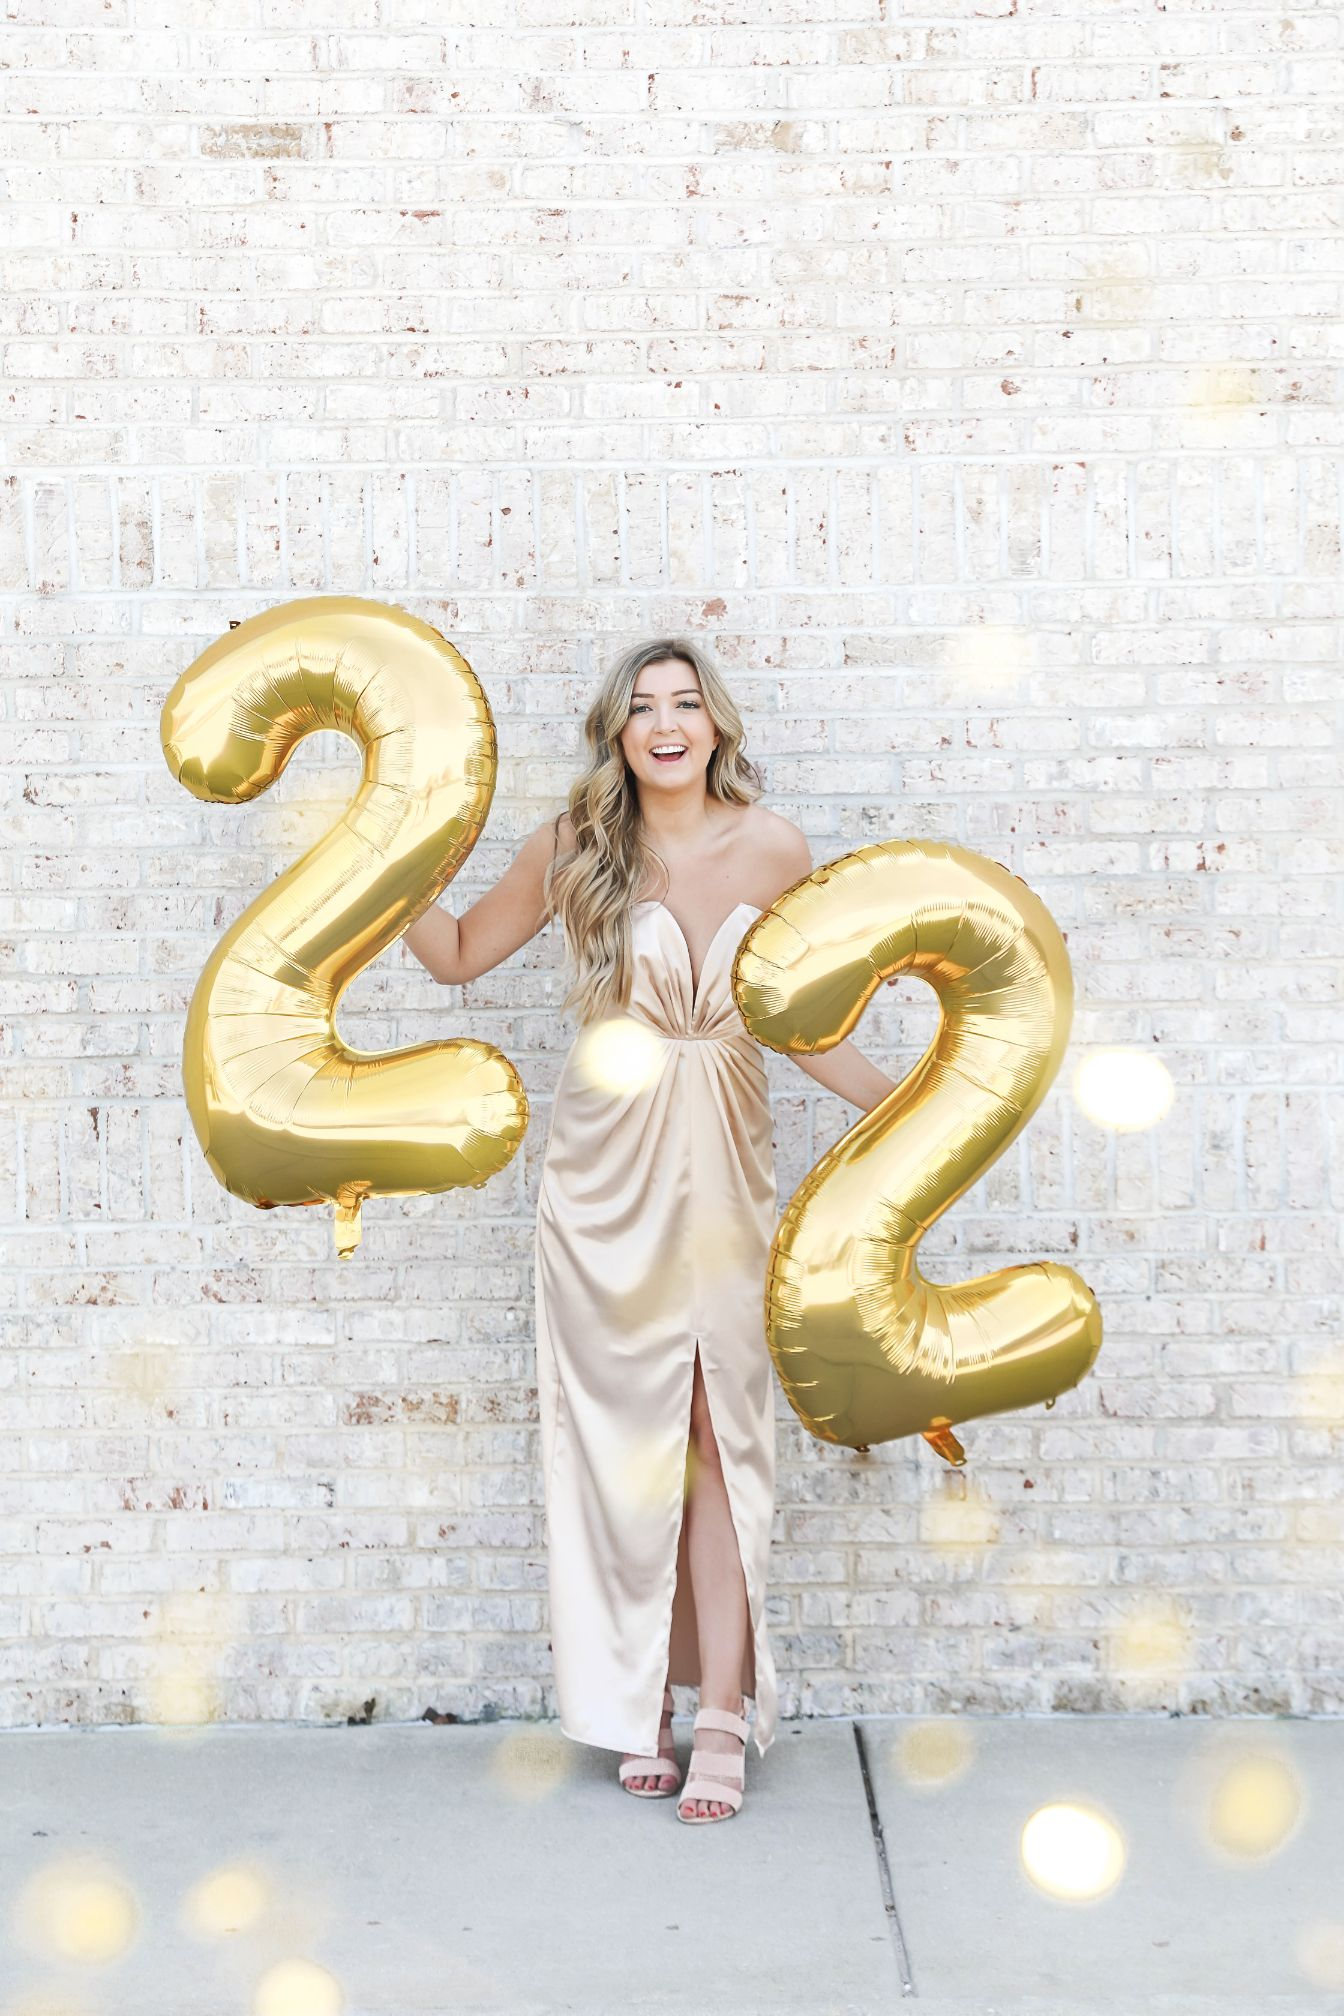 22nd birthday! I'm feeling twenty two! The cutest birthday balloons photoshoot with glitter confetti! I also love this gold dress! Details on fashion blog daily dose of charm by lauren lindmark